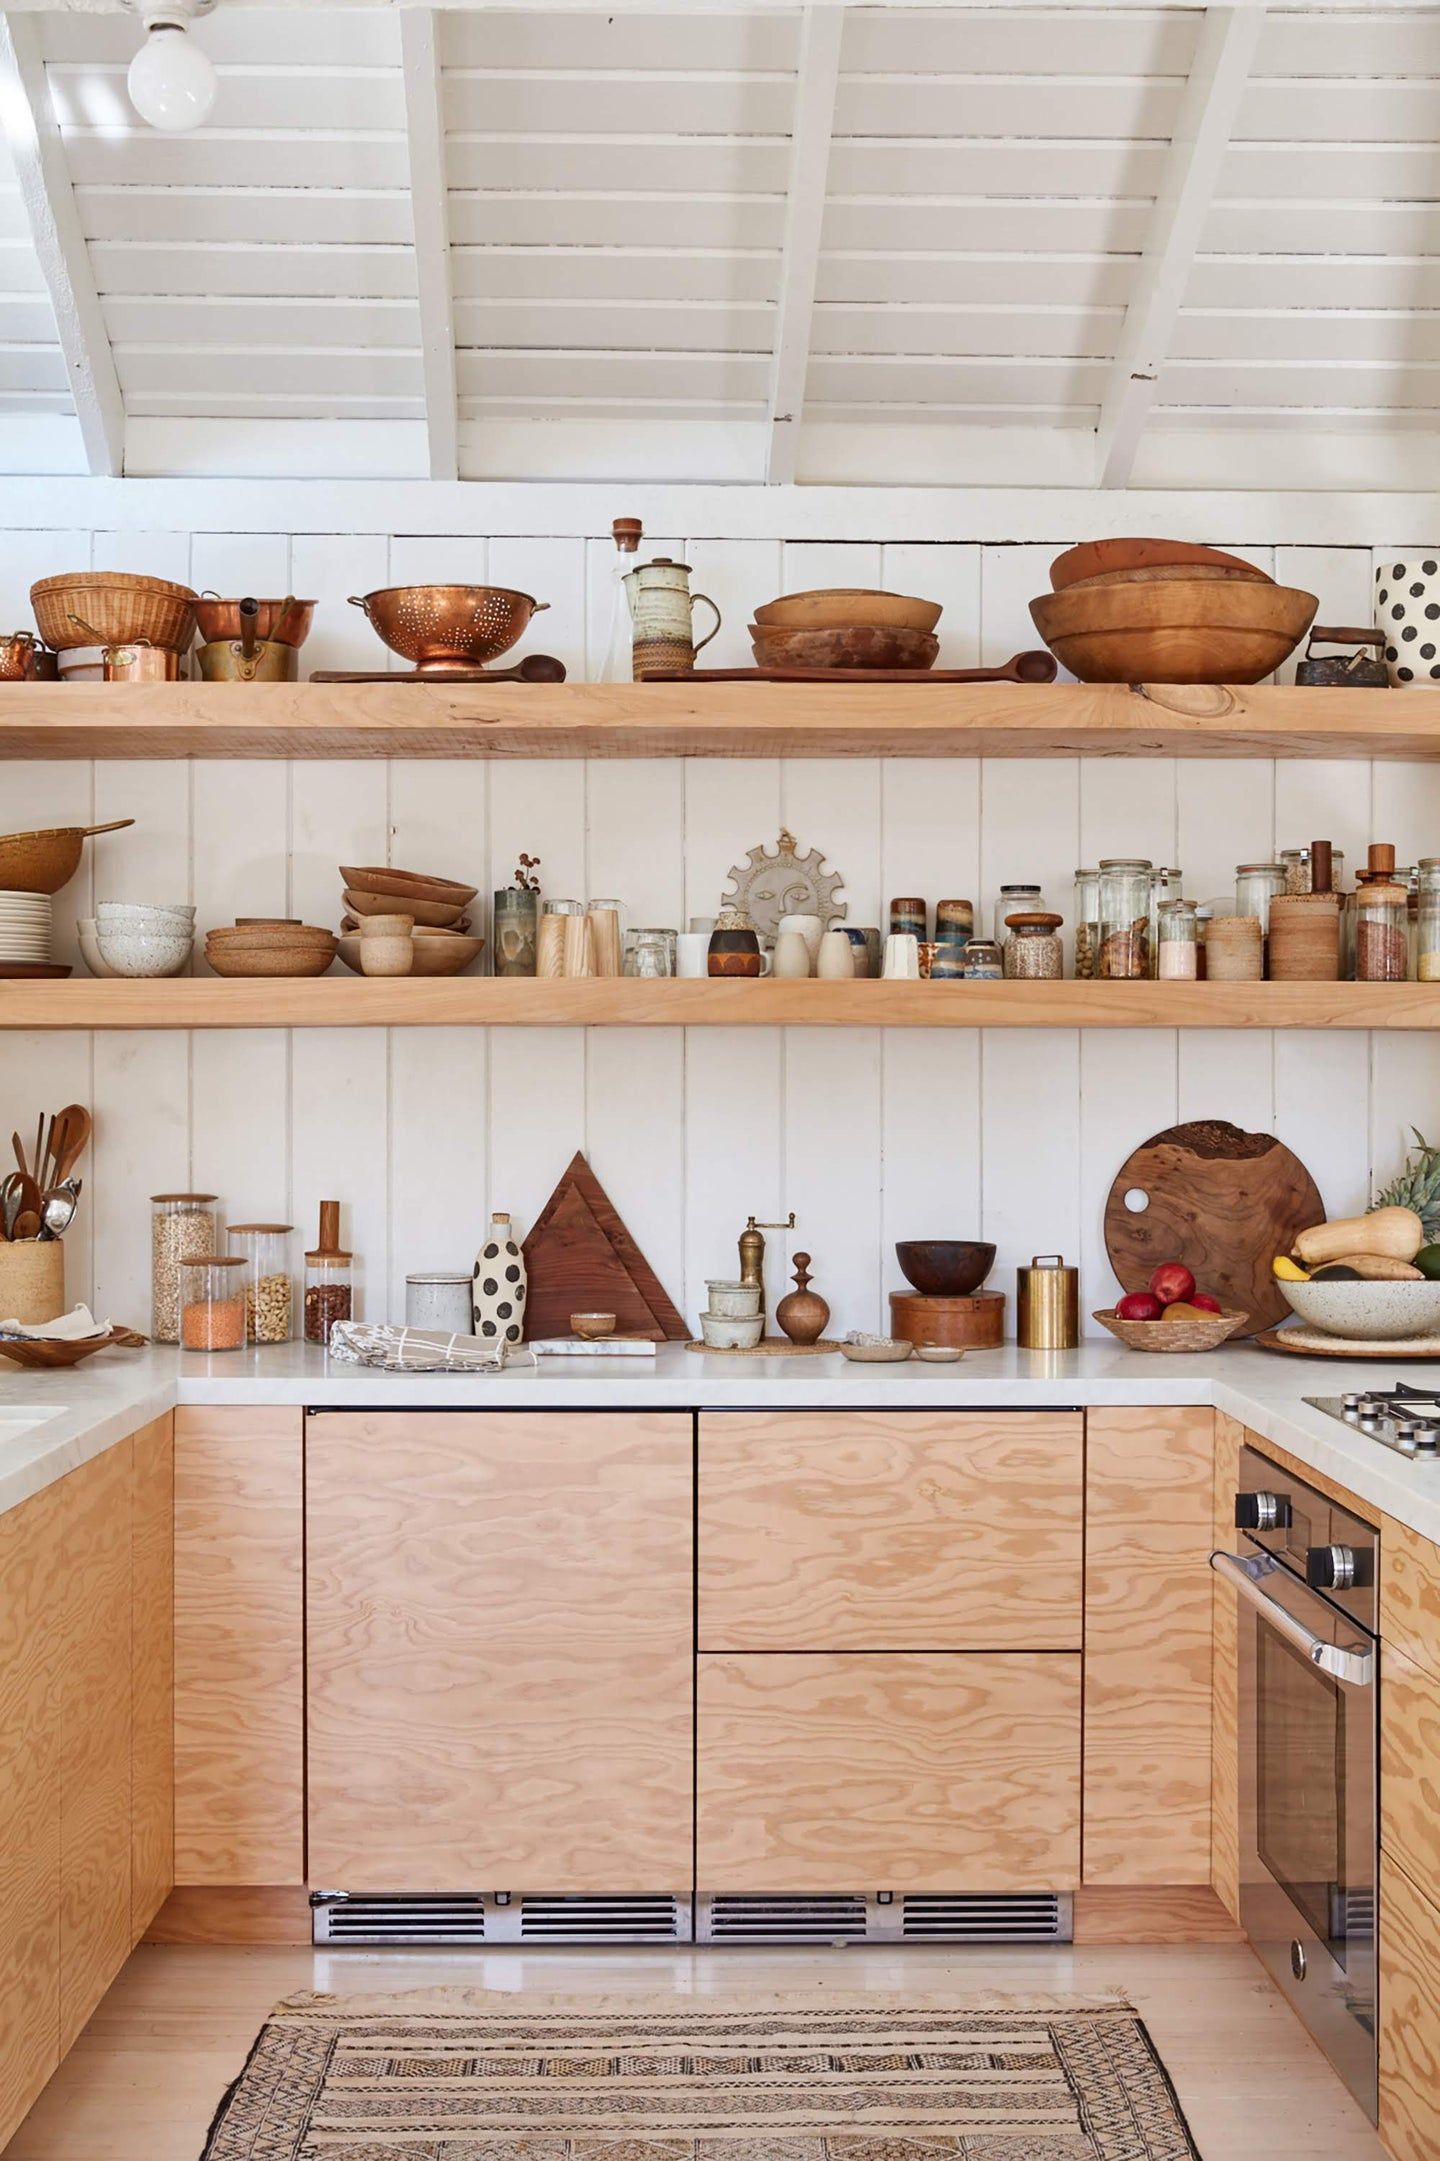 plywood kitchen with open wood shelves